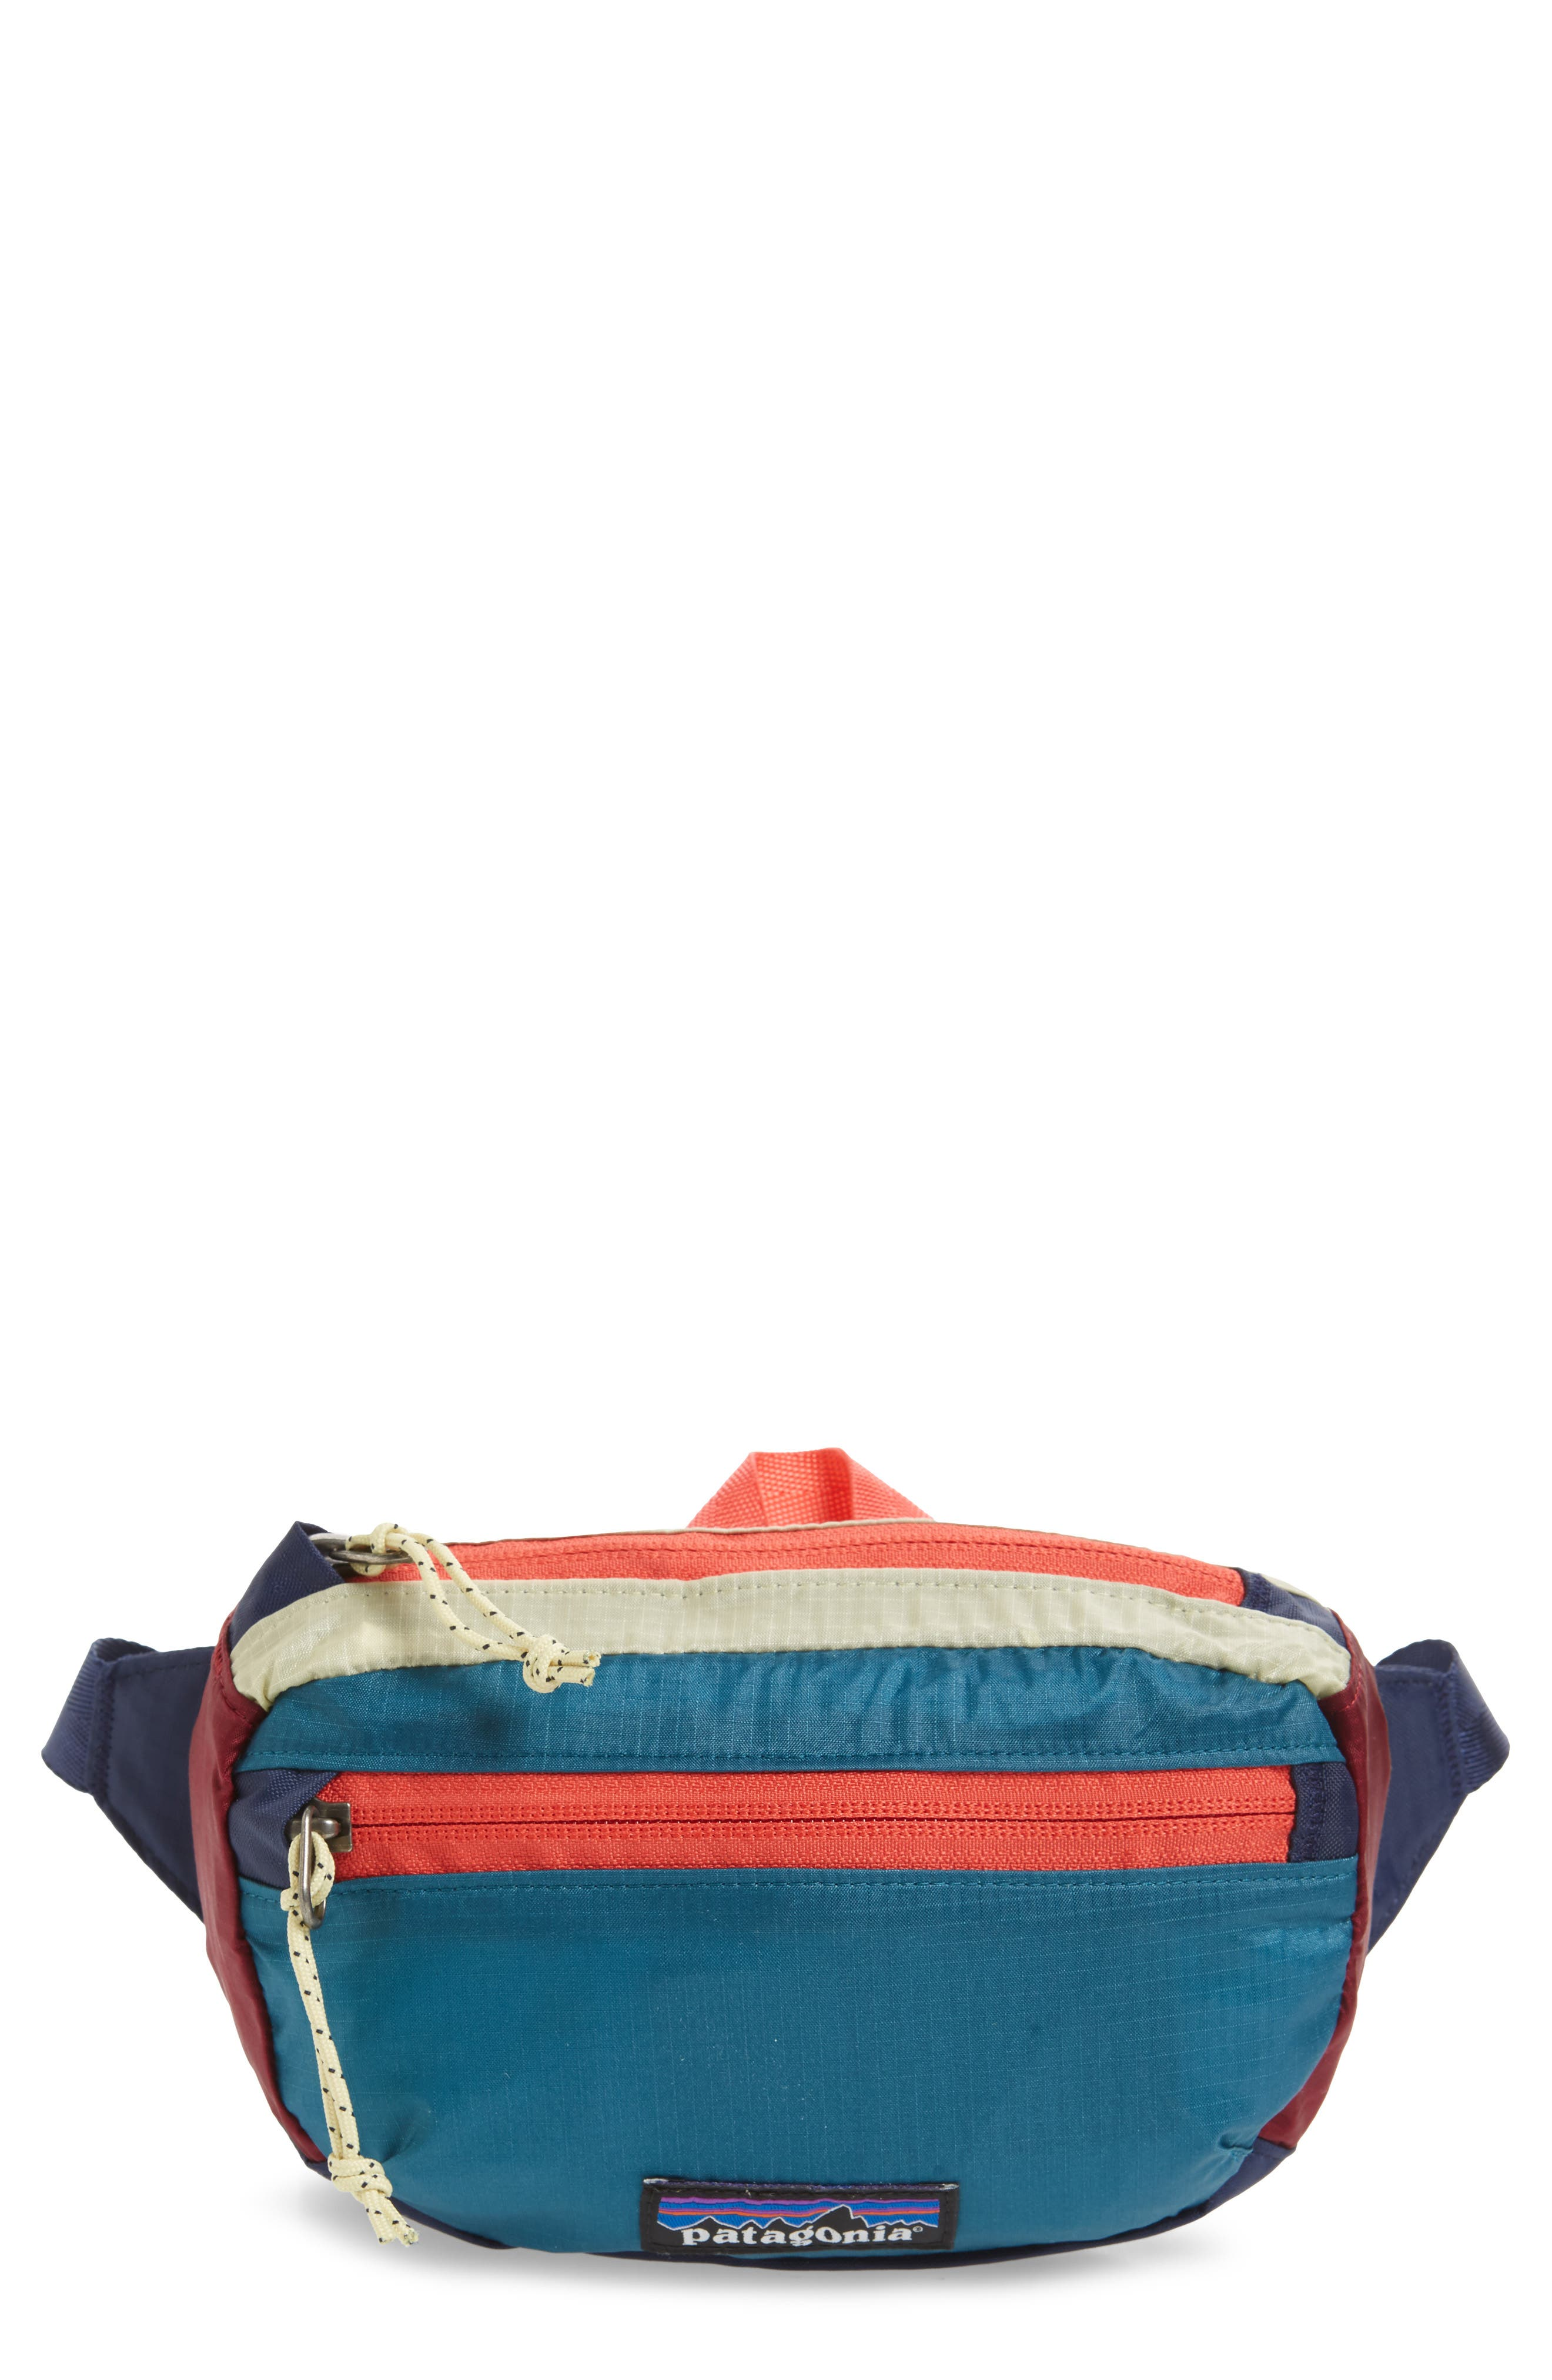 PATAGONIA Travel Belt Bag, Main, color, PATCHWORK ARROW RED / NAVY